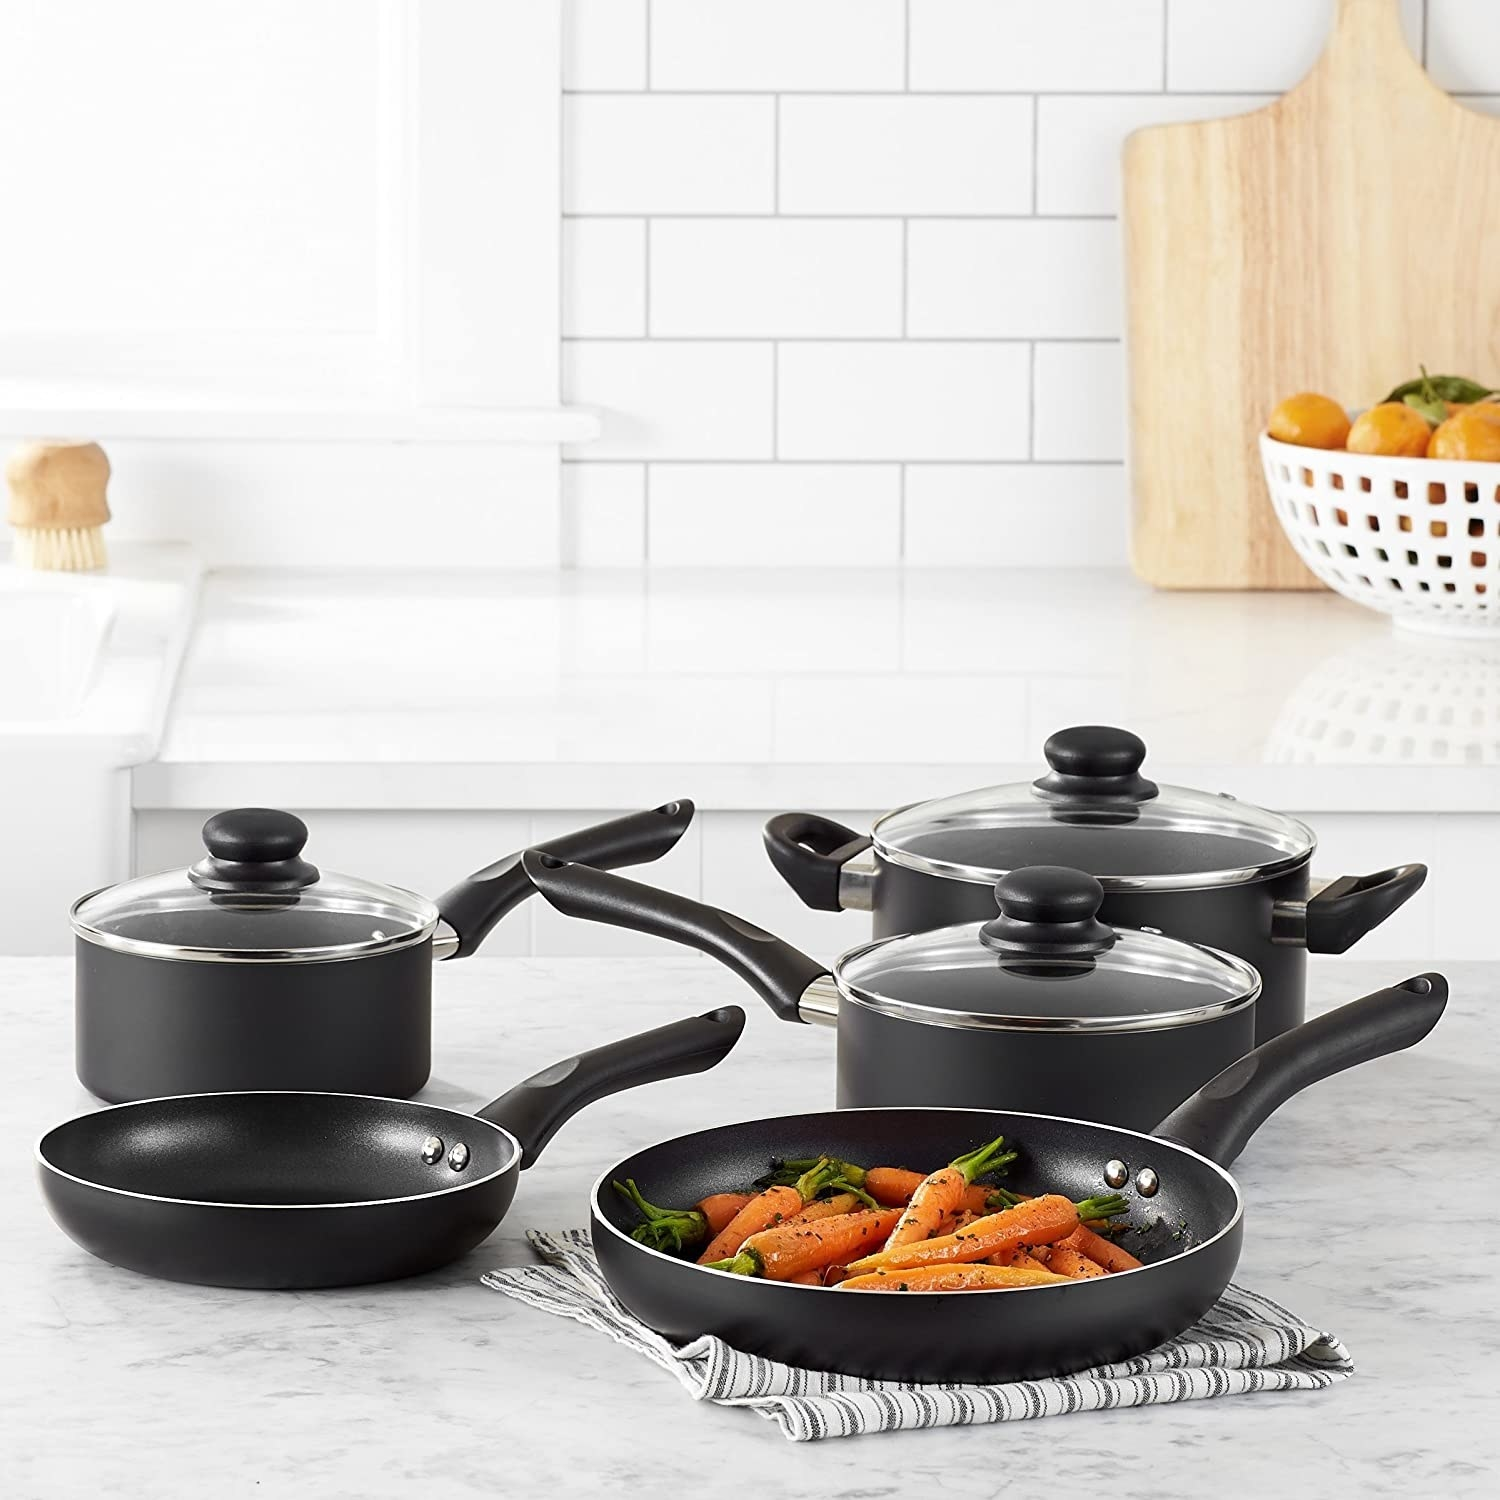 A non-stick cookware set with carrots inside